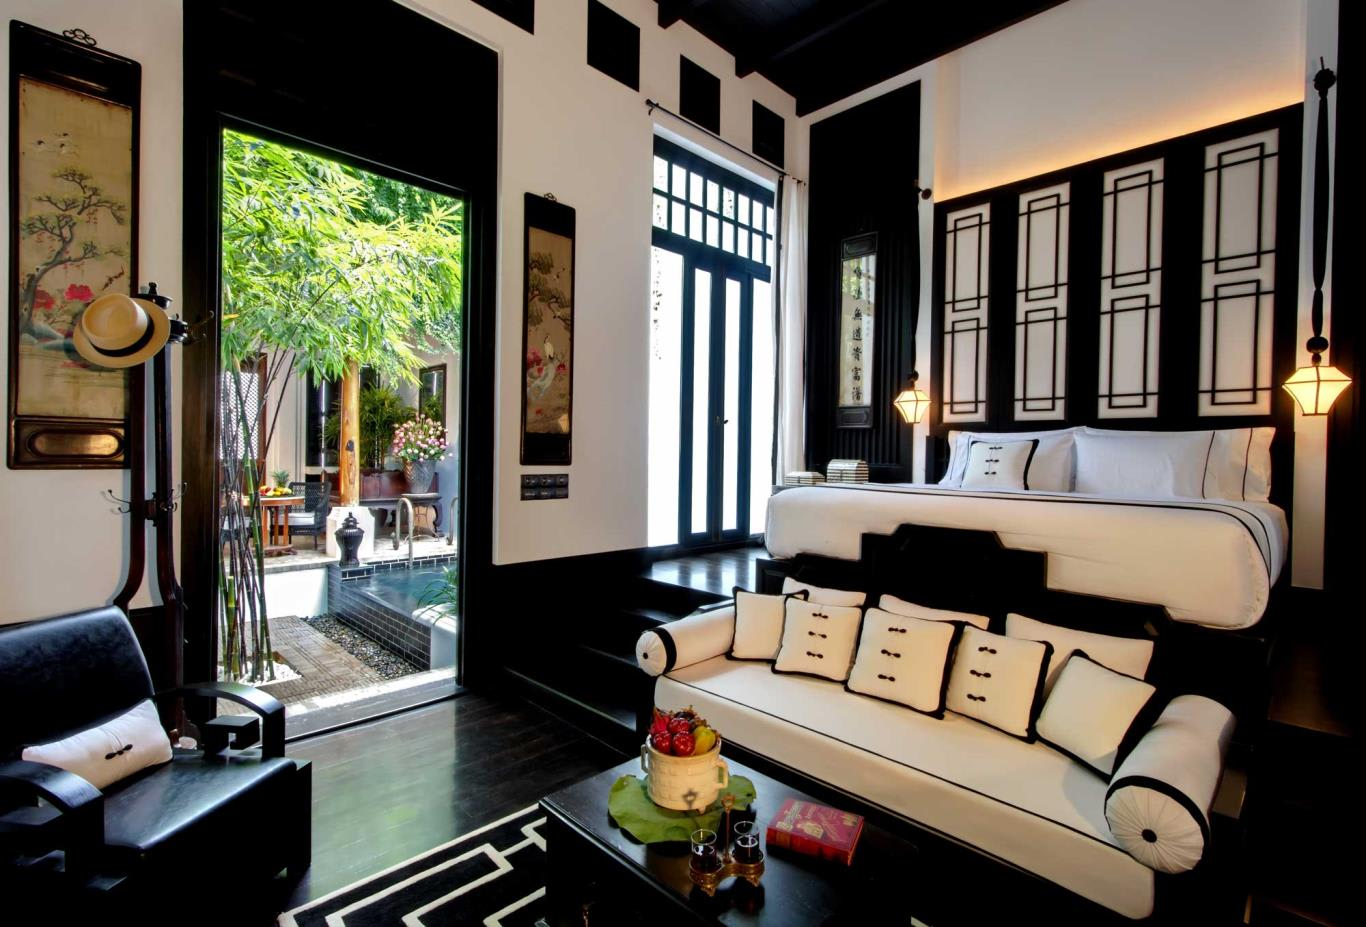 Pool Villa Chinese Theme (Bedroom)